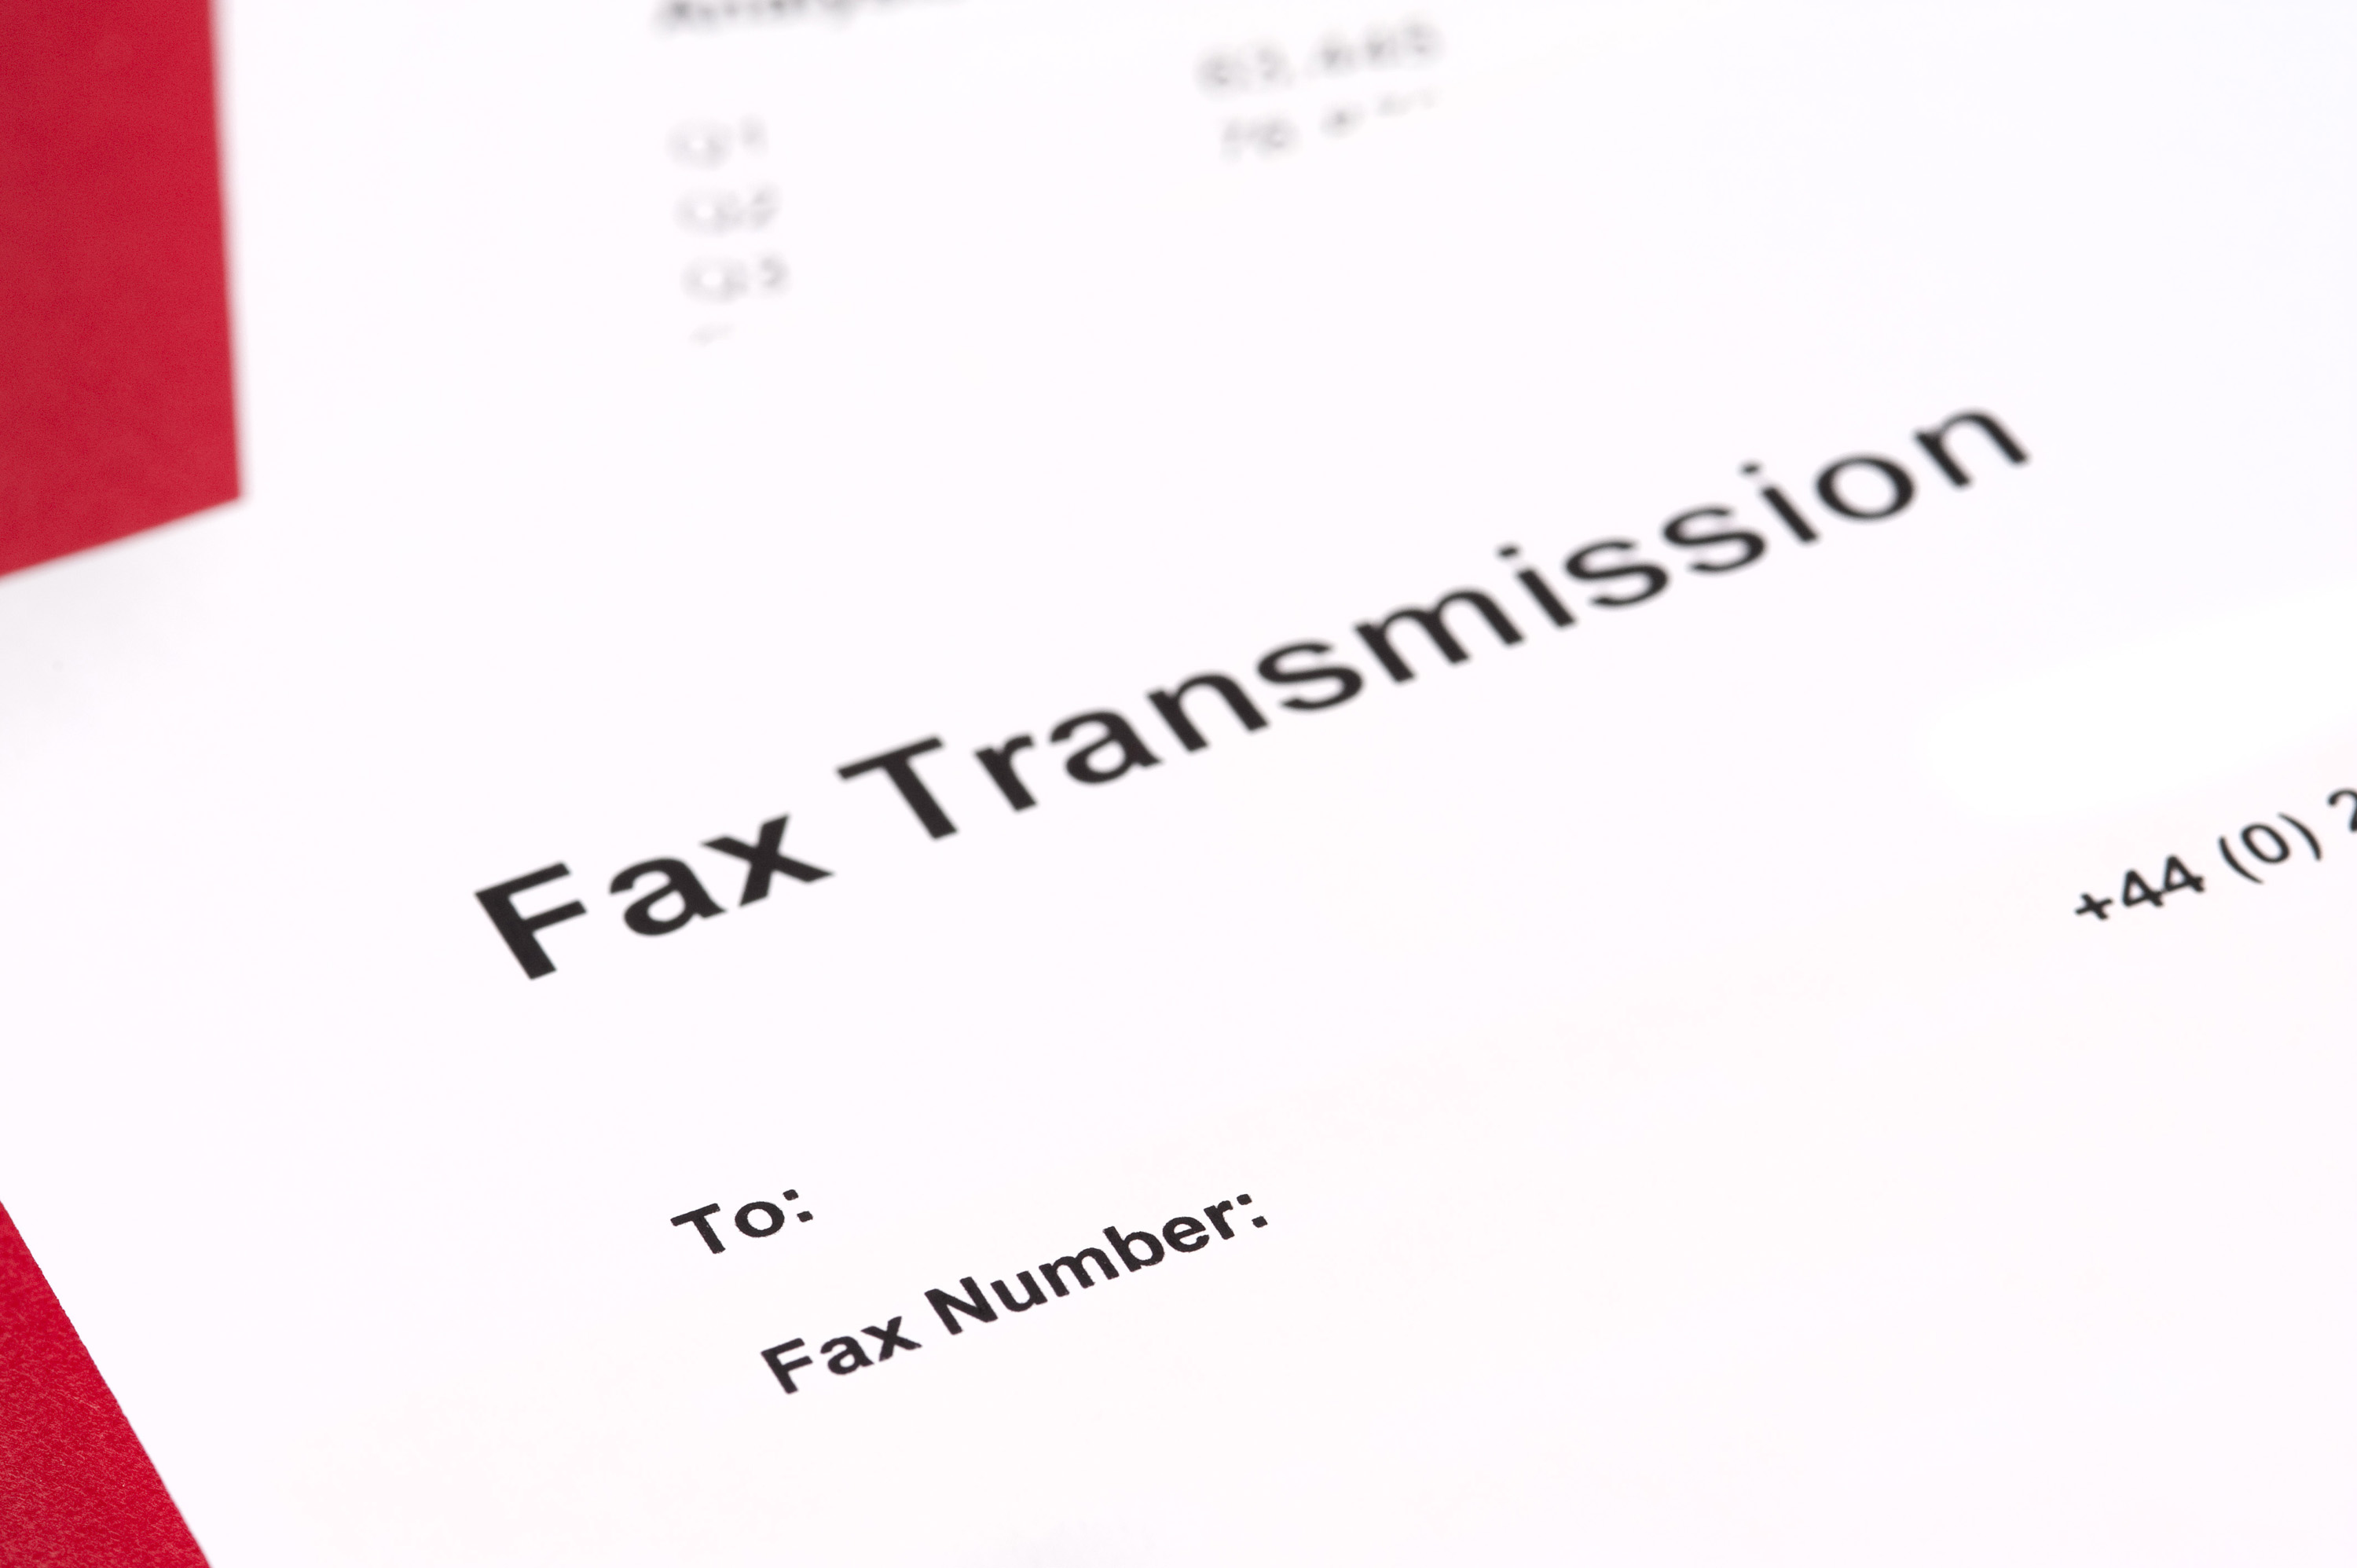 image of blank fax transmission form